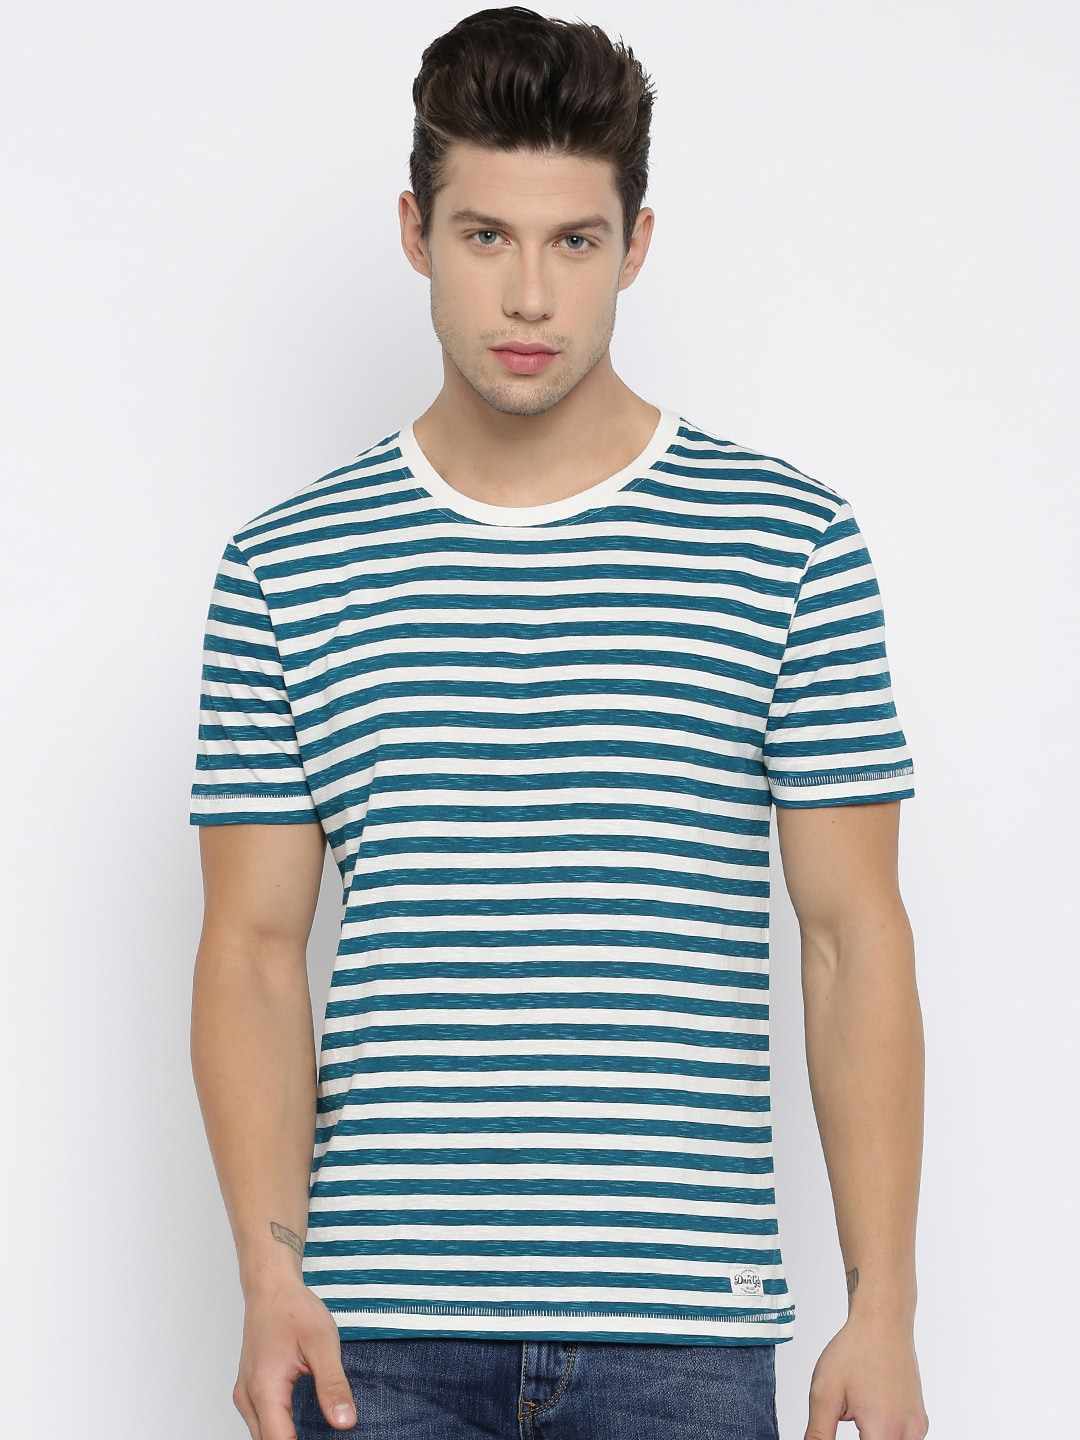 5f80e4060a9 Men T-shirts - Buy T-shirt for Men Online in India